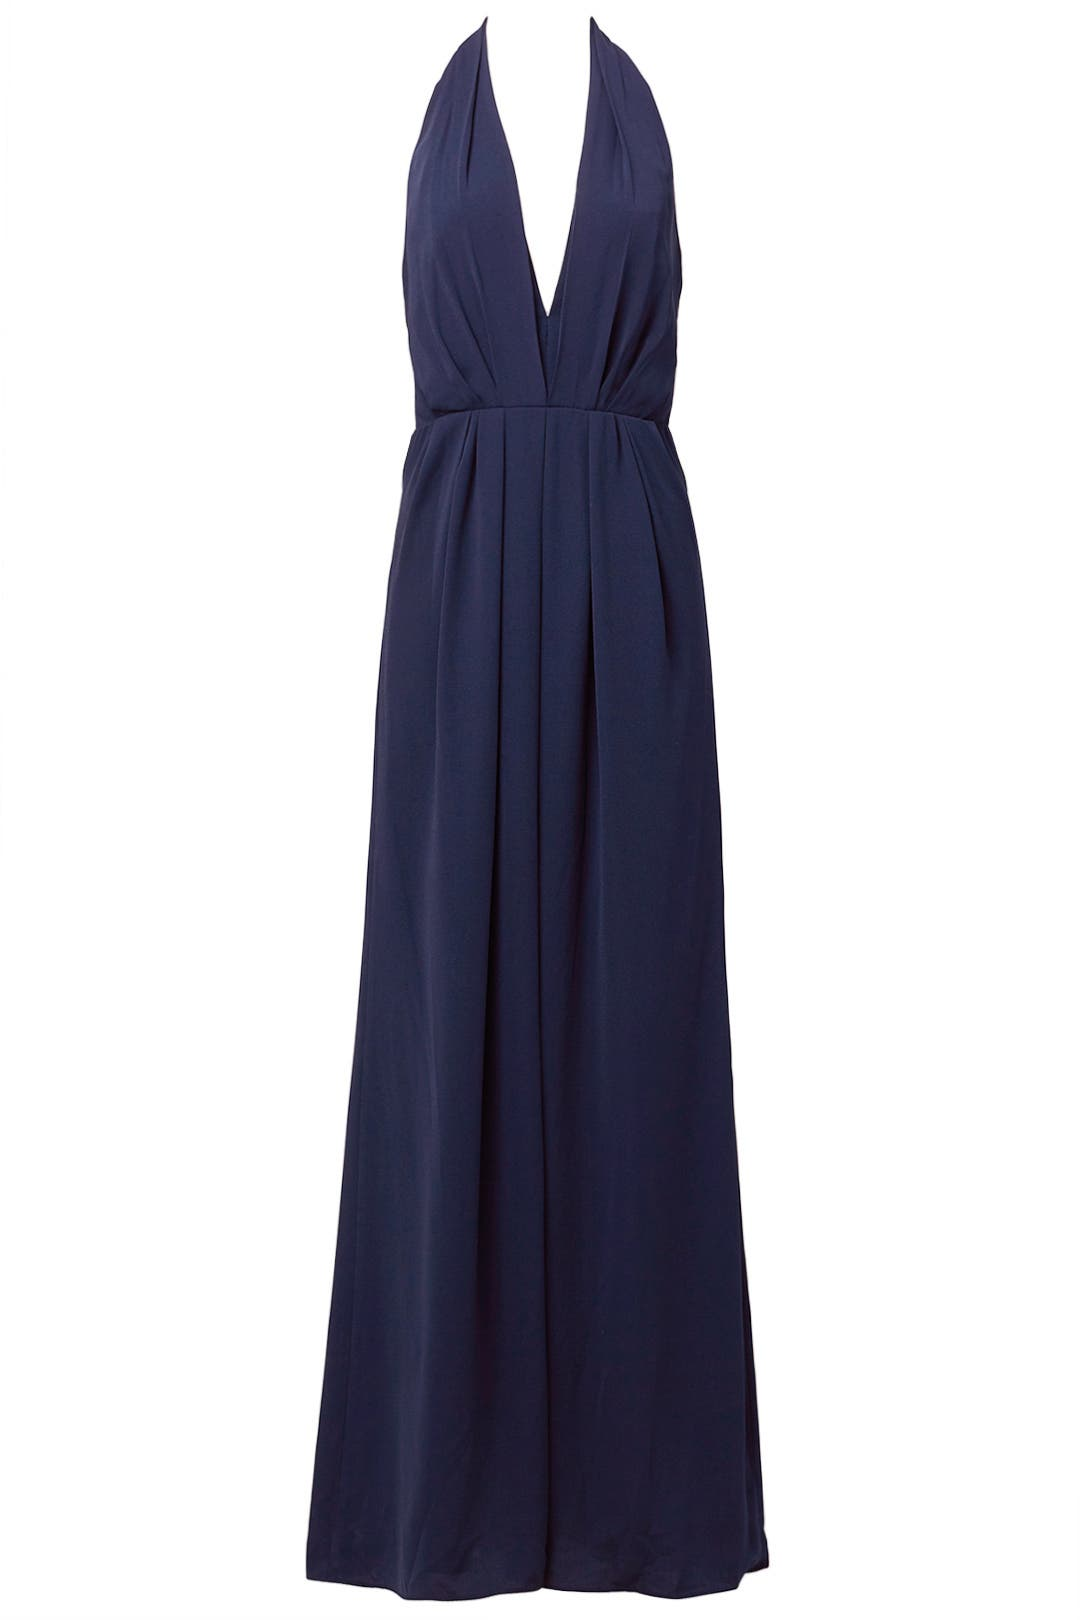 Blue Long Formal Dresses